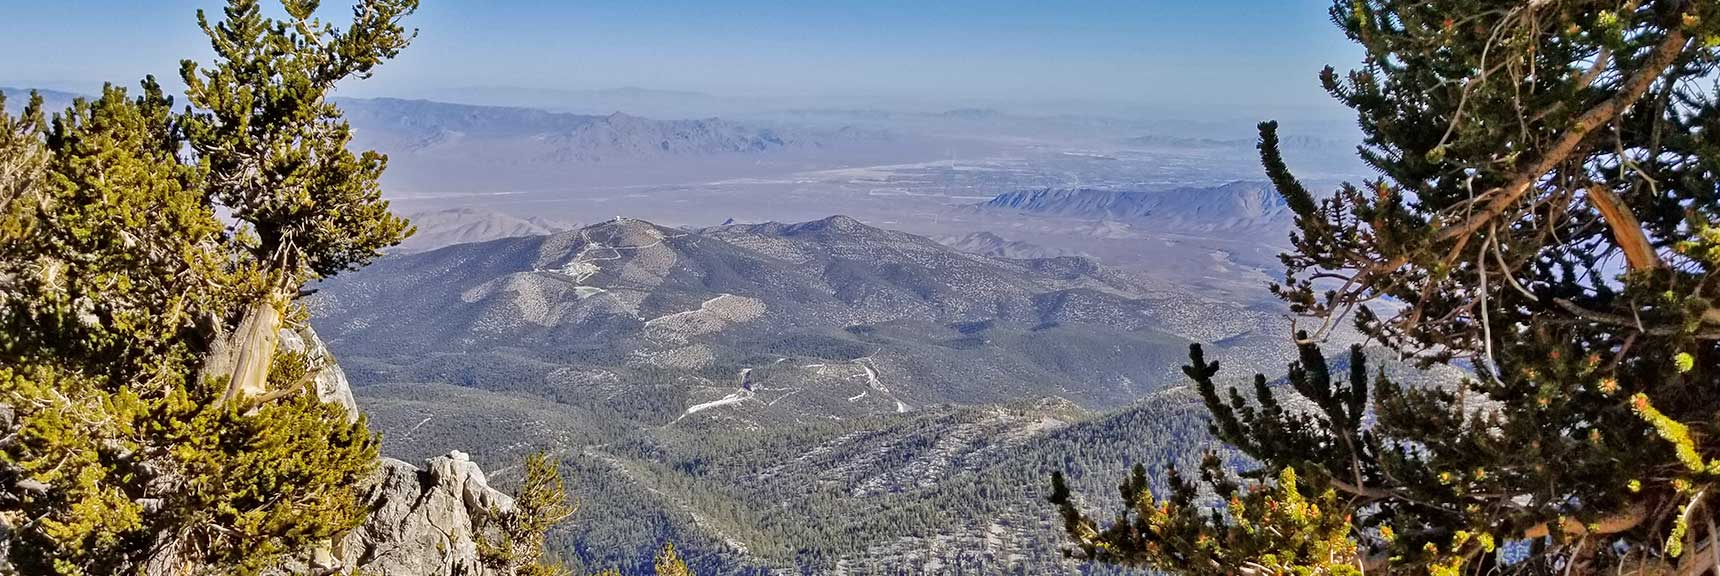 Looking Back Down the Final Approach to Mummy Mountain Summit, Nevada